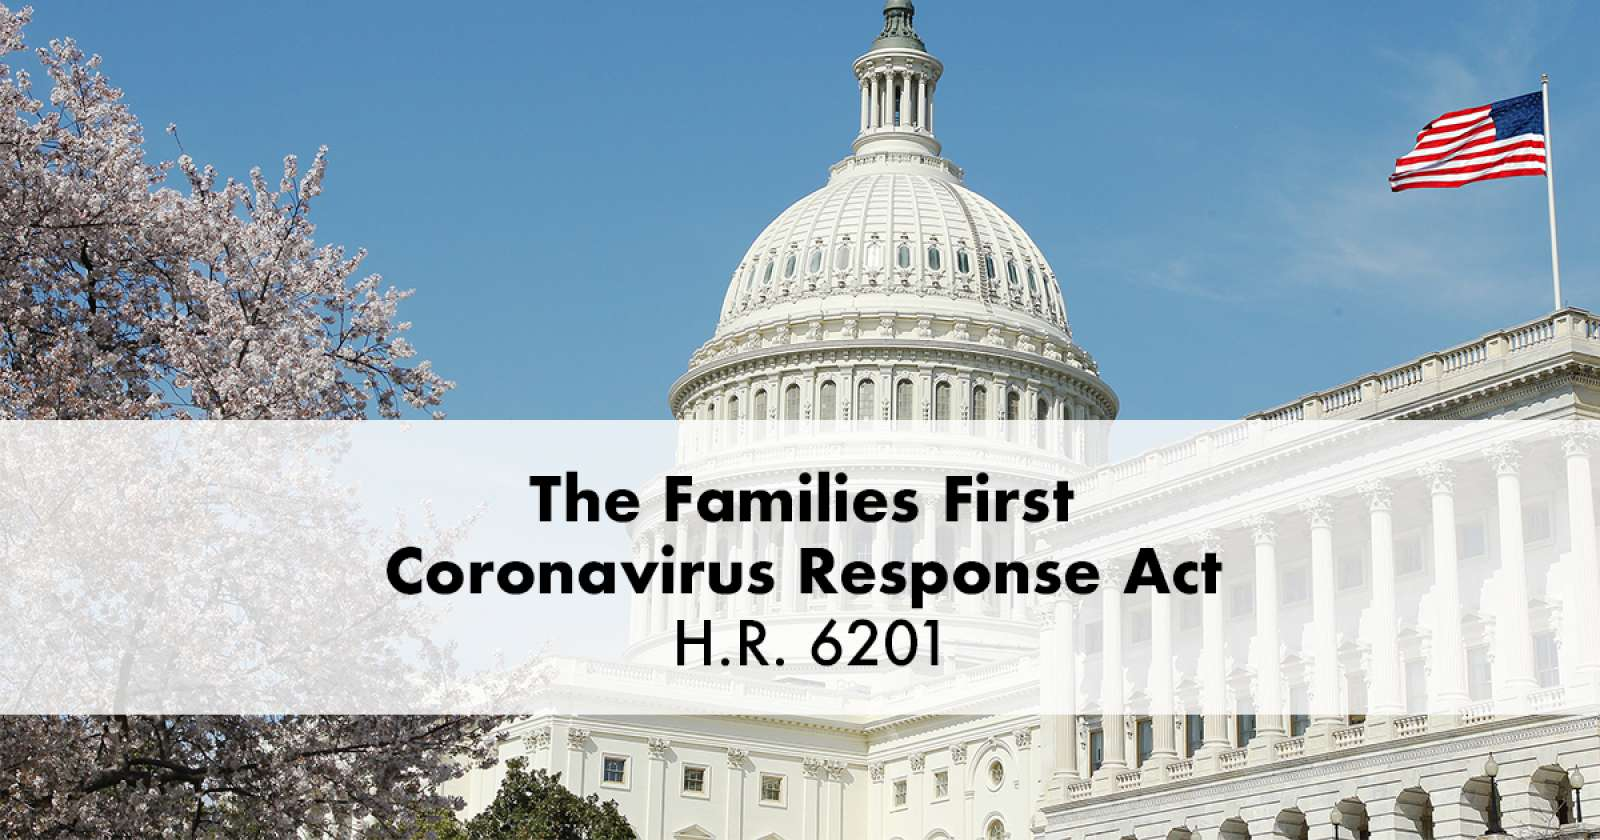 LJSL LEGAL ALERT: Families First Coronavirus Response Act – What Employers Need to Know Now